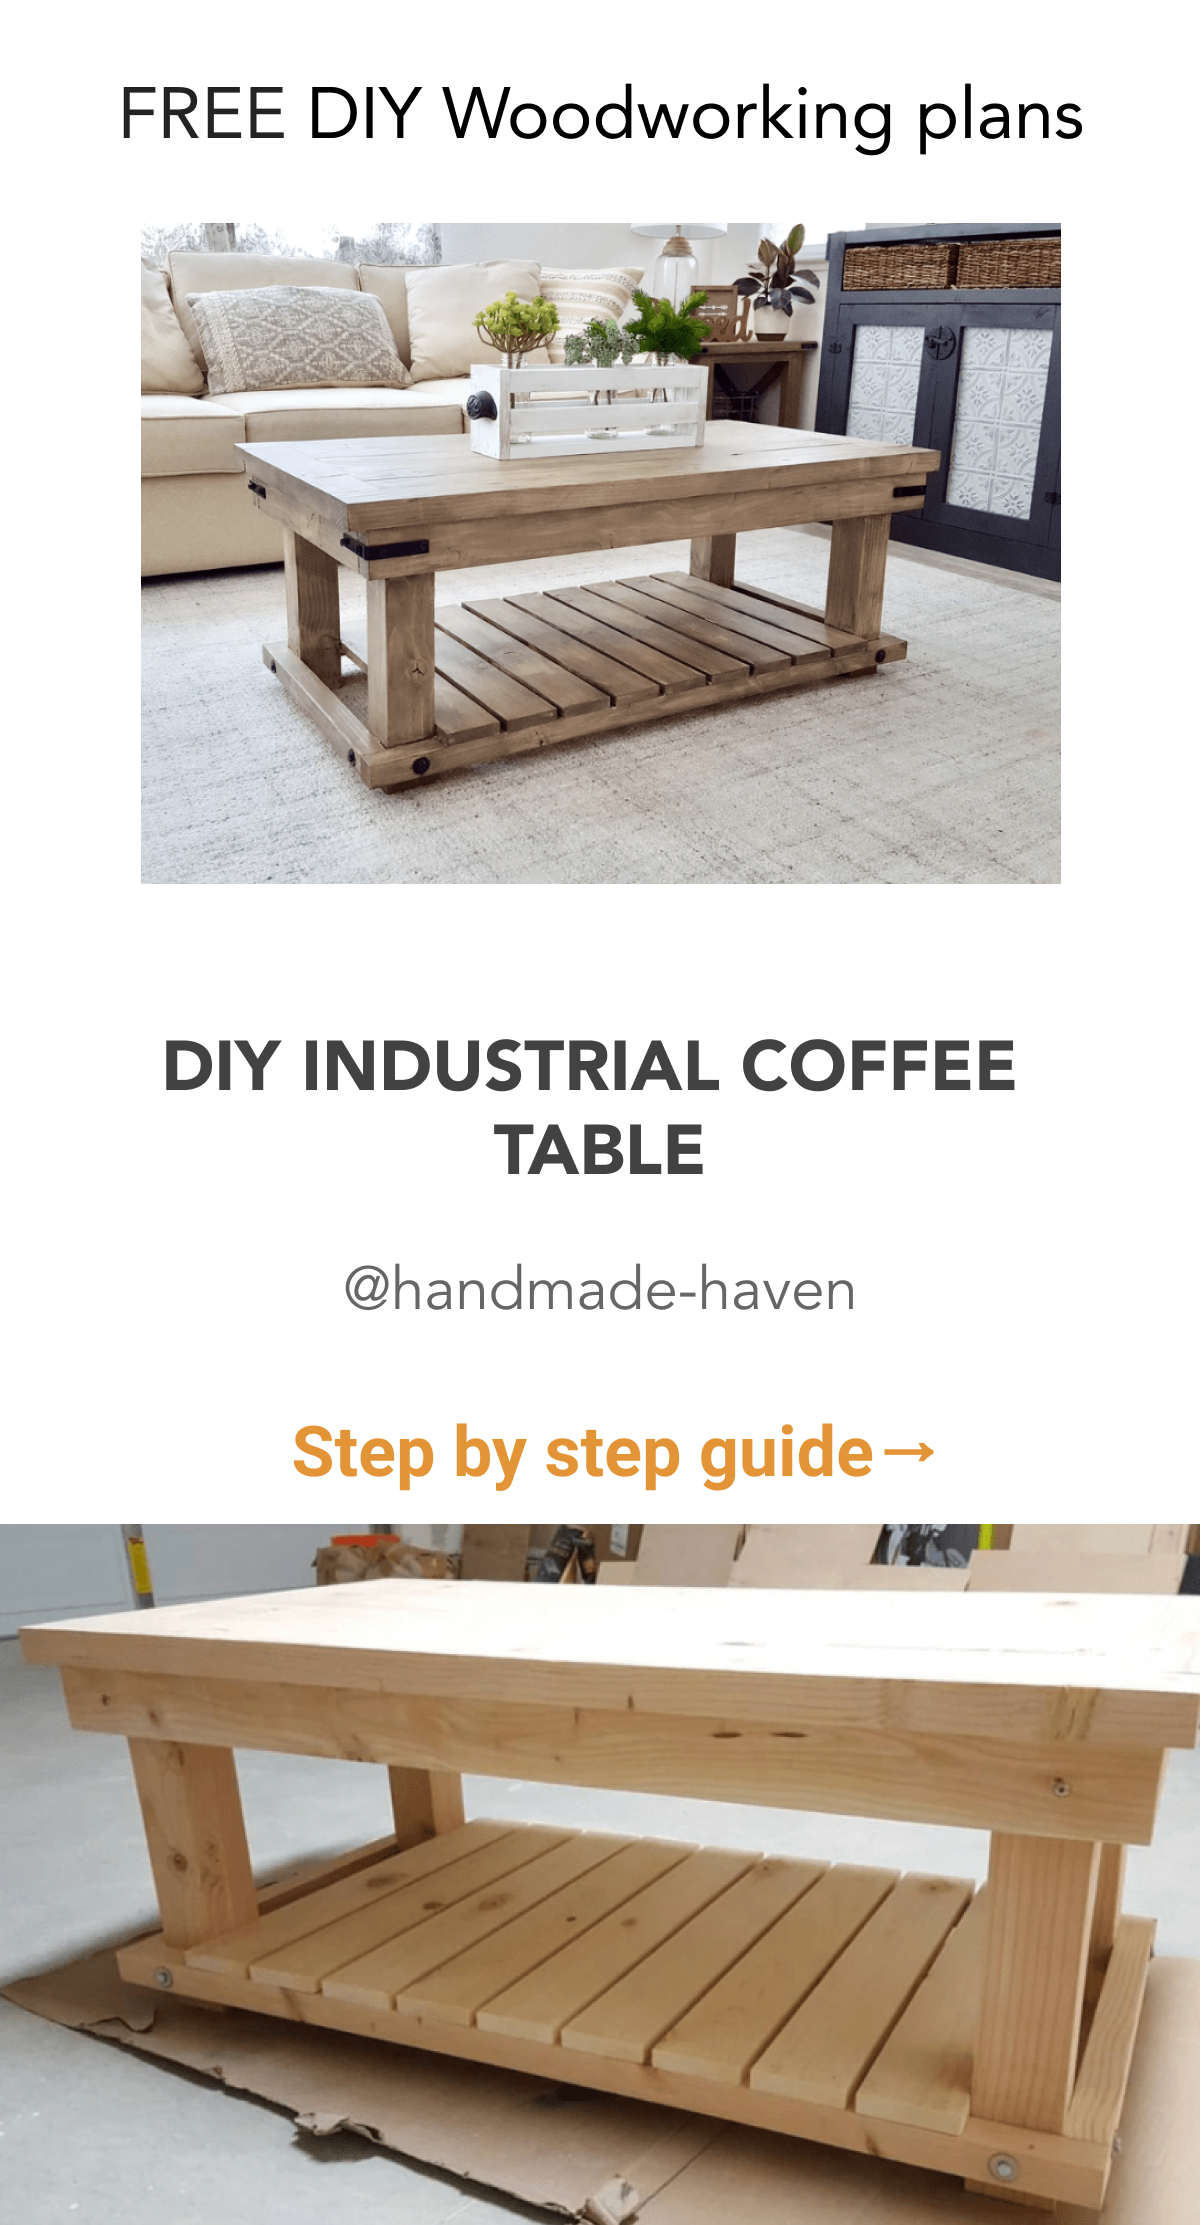 Diy Industrial Coffee Table In 2020 Coffee Table Diy Furniture Plans Industrial Coffee Table